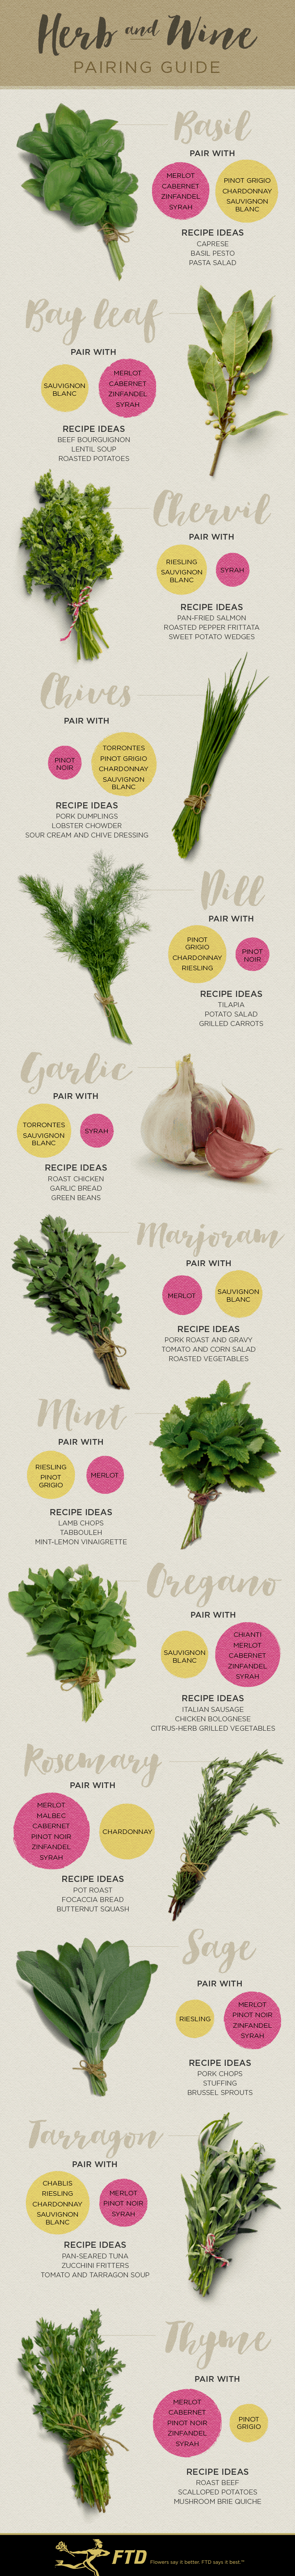 A Pairing Guide: The Best Wines For The Herbs You Cook With!